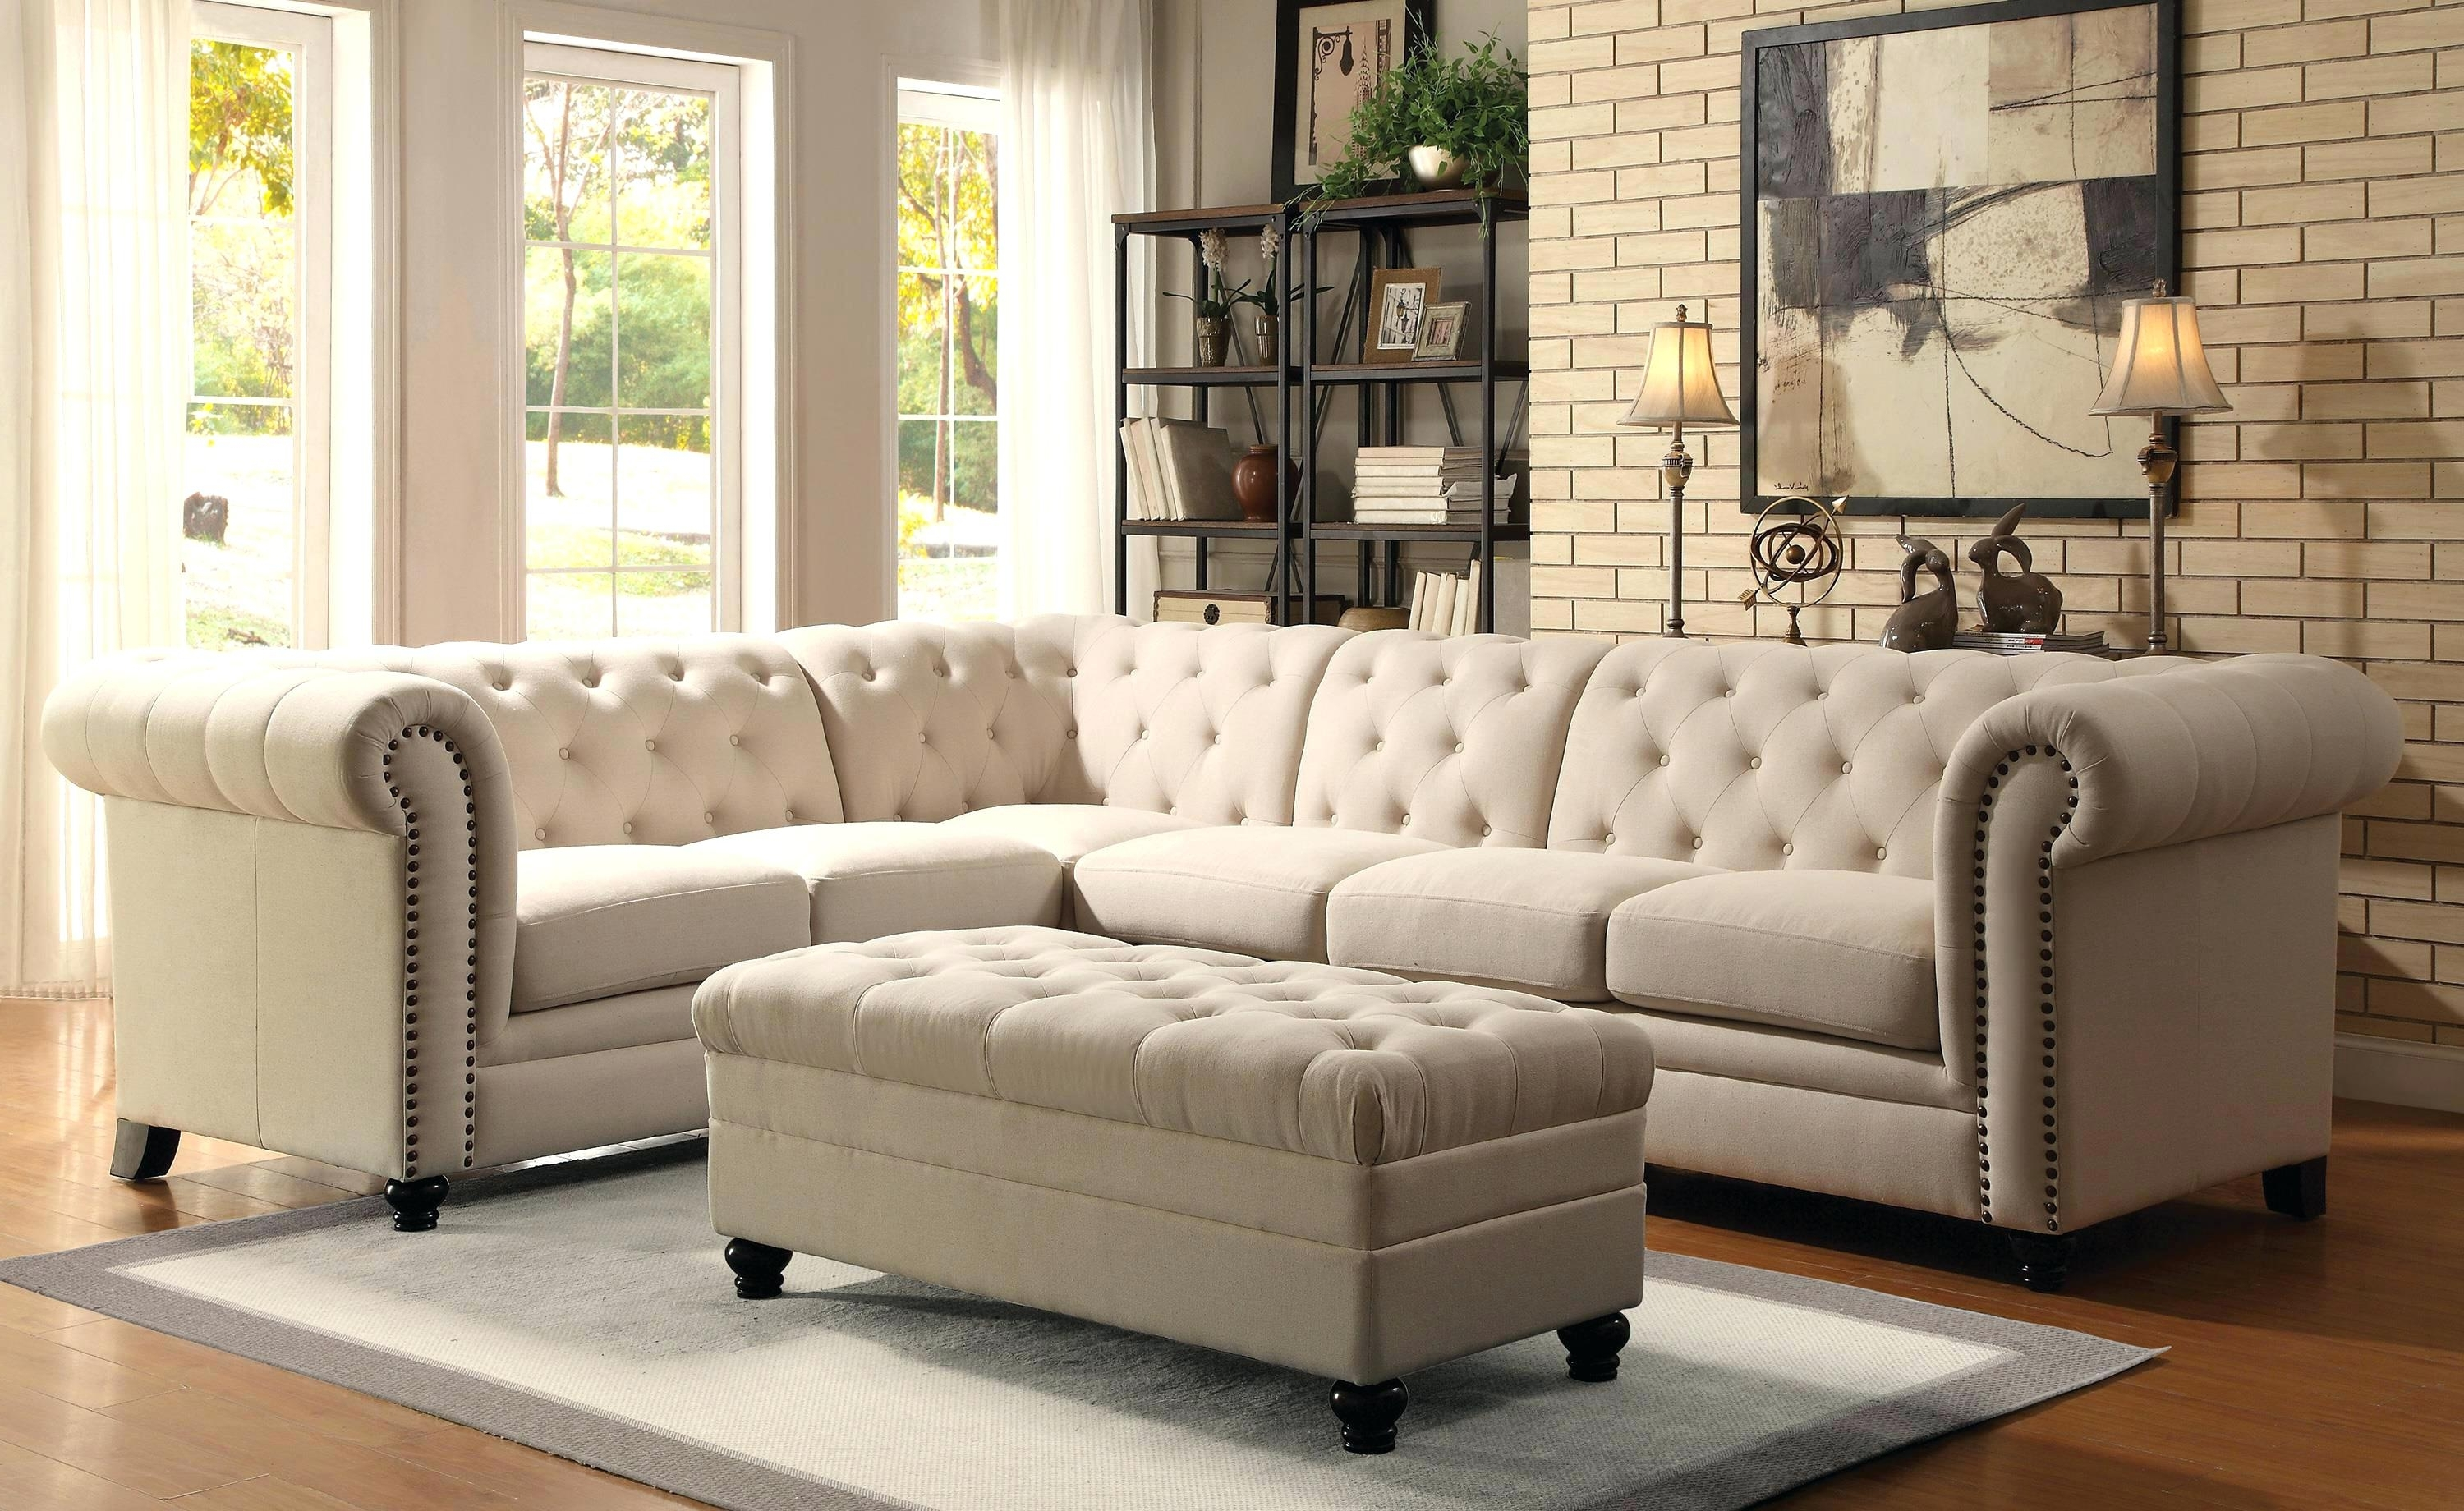 2018 London Ontario Sectional Sofas For L Sectional Sofa Shad Sectiona 1810282 Slipcovers Walmart Covers (View 2 of 20)